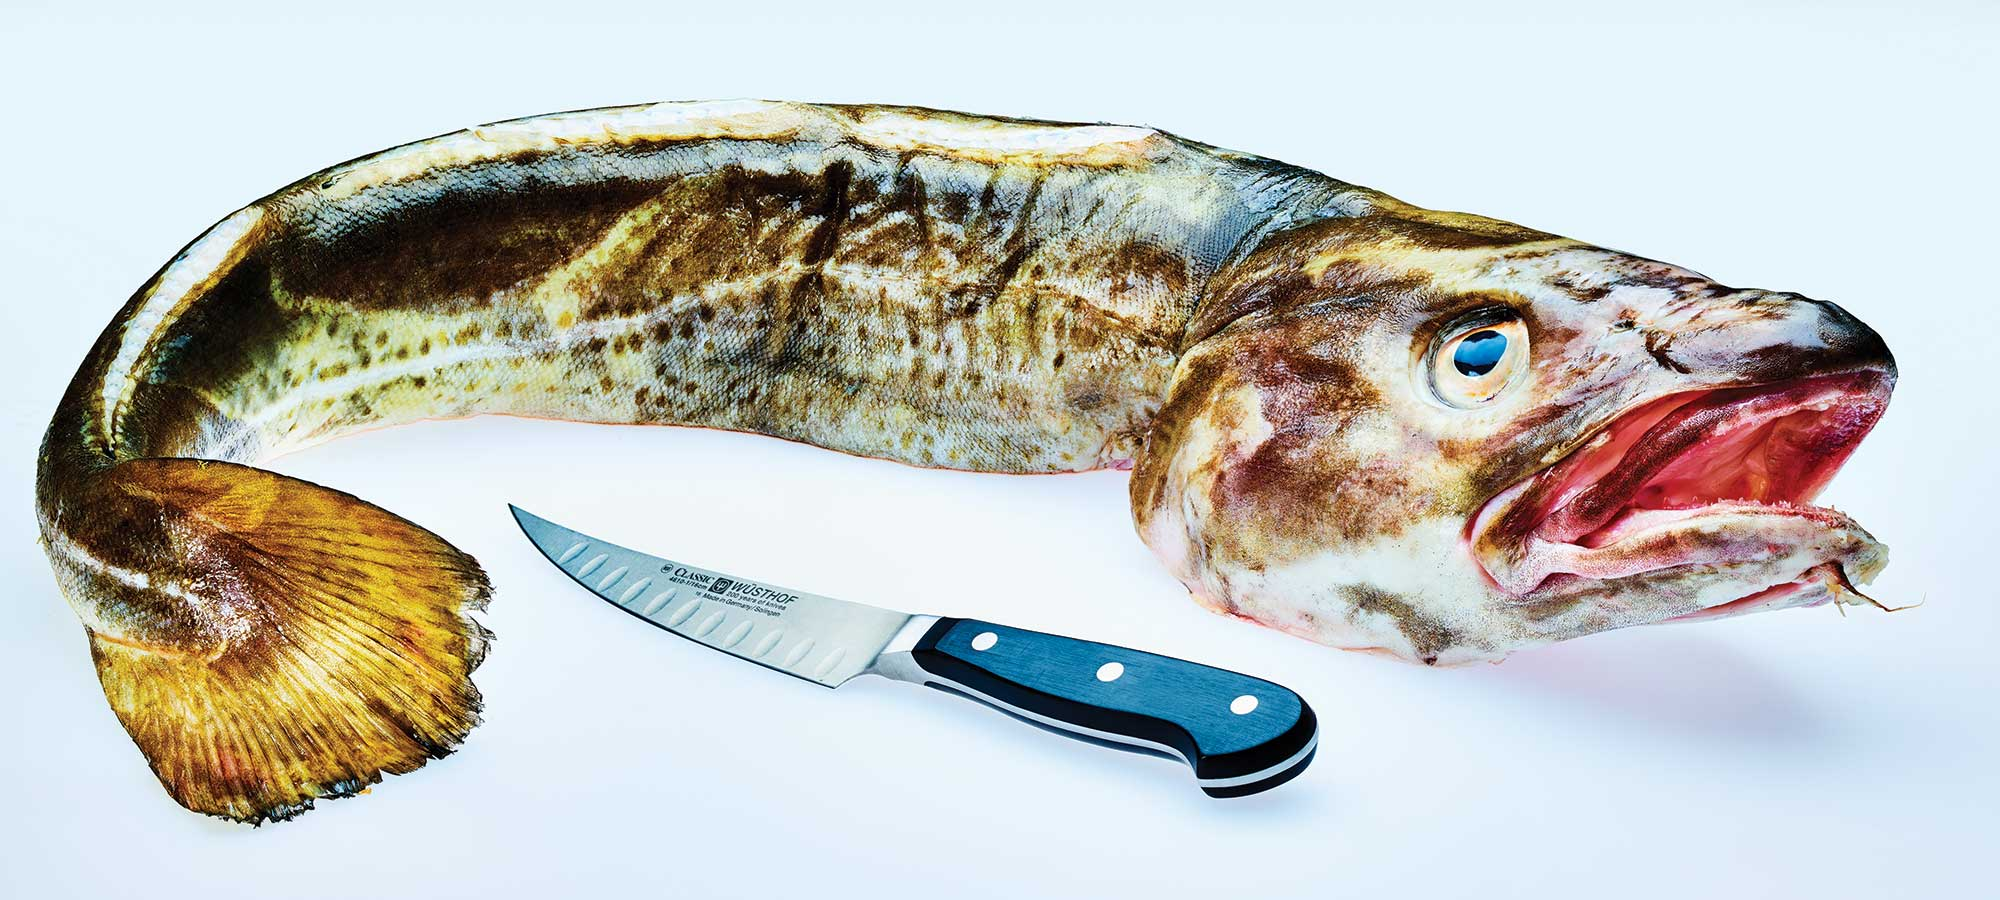 a whole fish and a knife